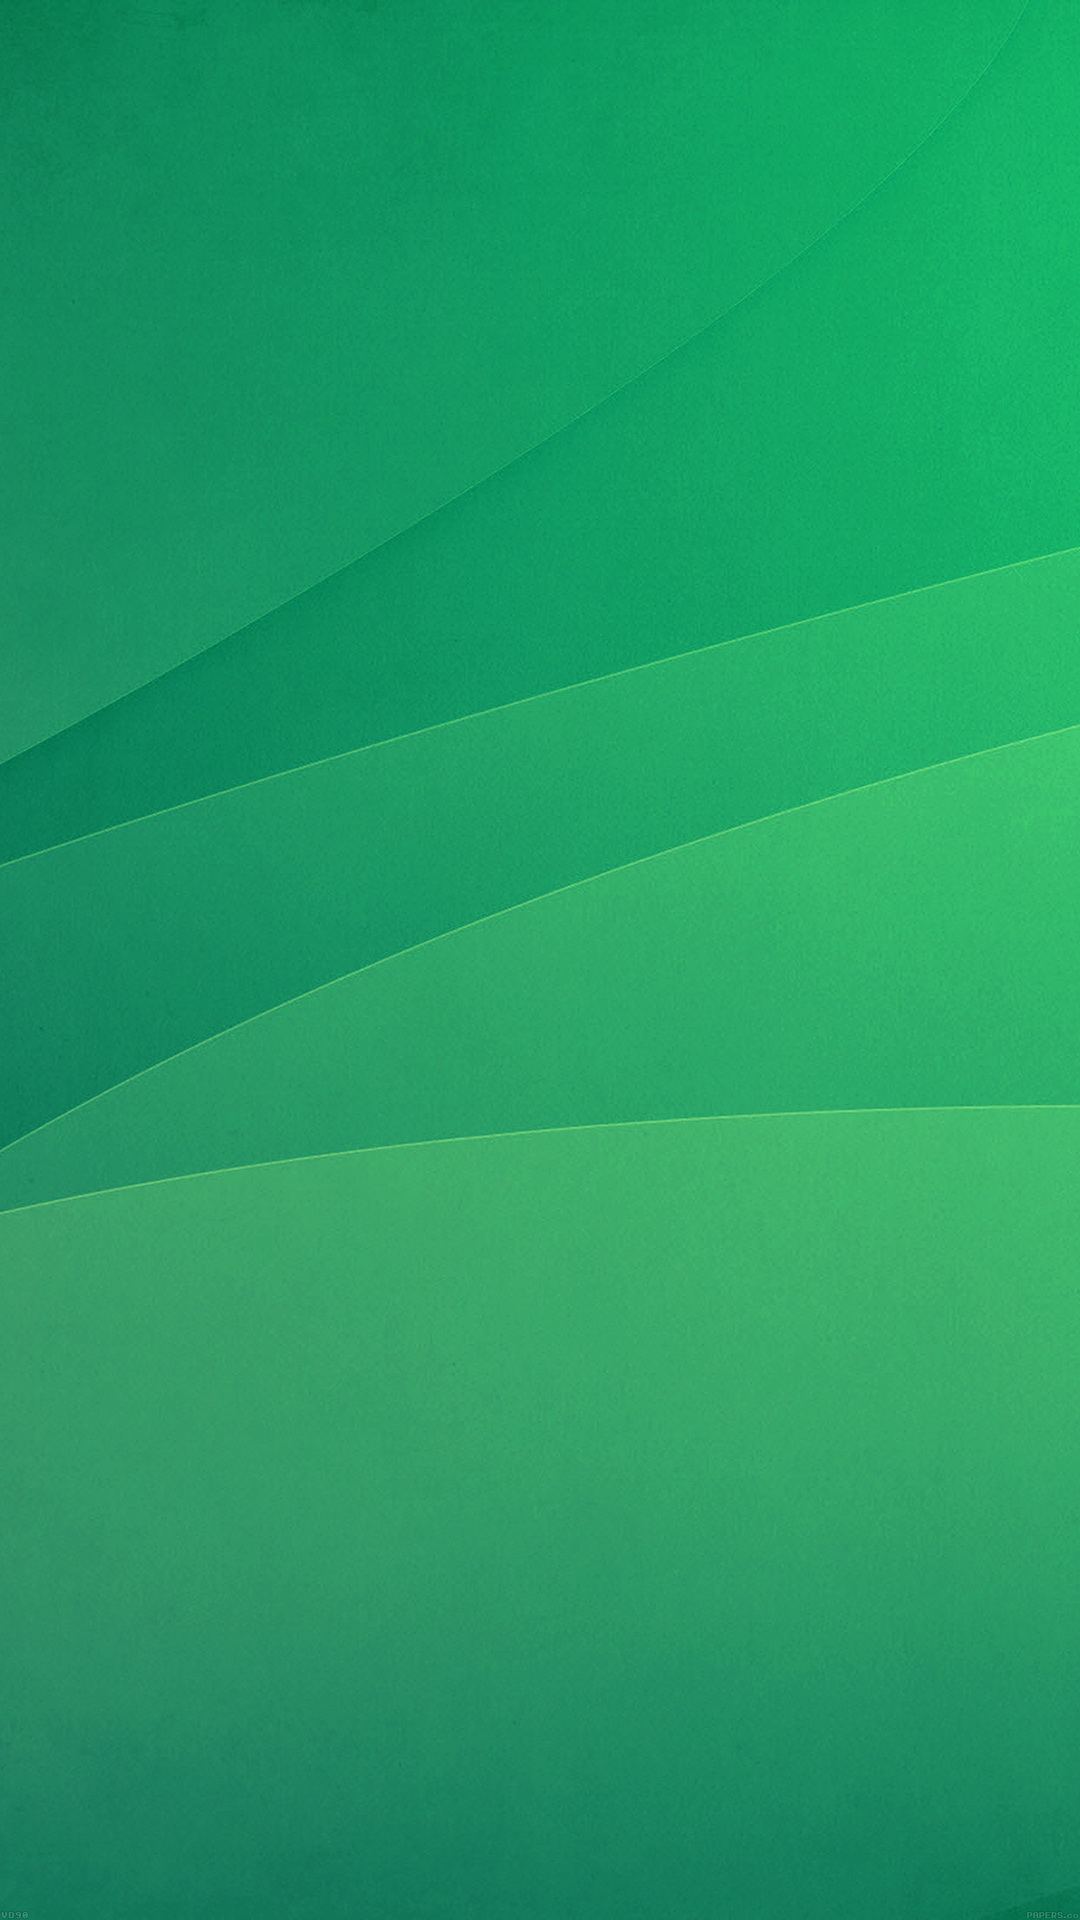 Free Animated Wallpaper Backgrounds Shining Aqua Green Best Htc M9 Wallpapers Free And Easy